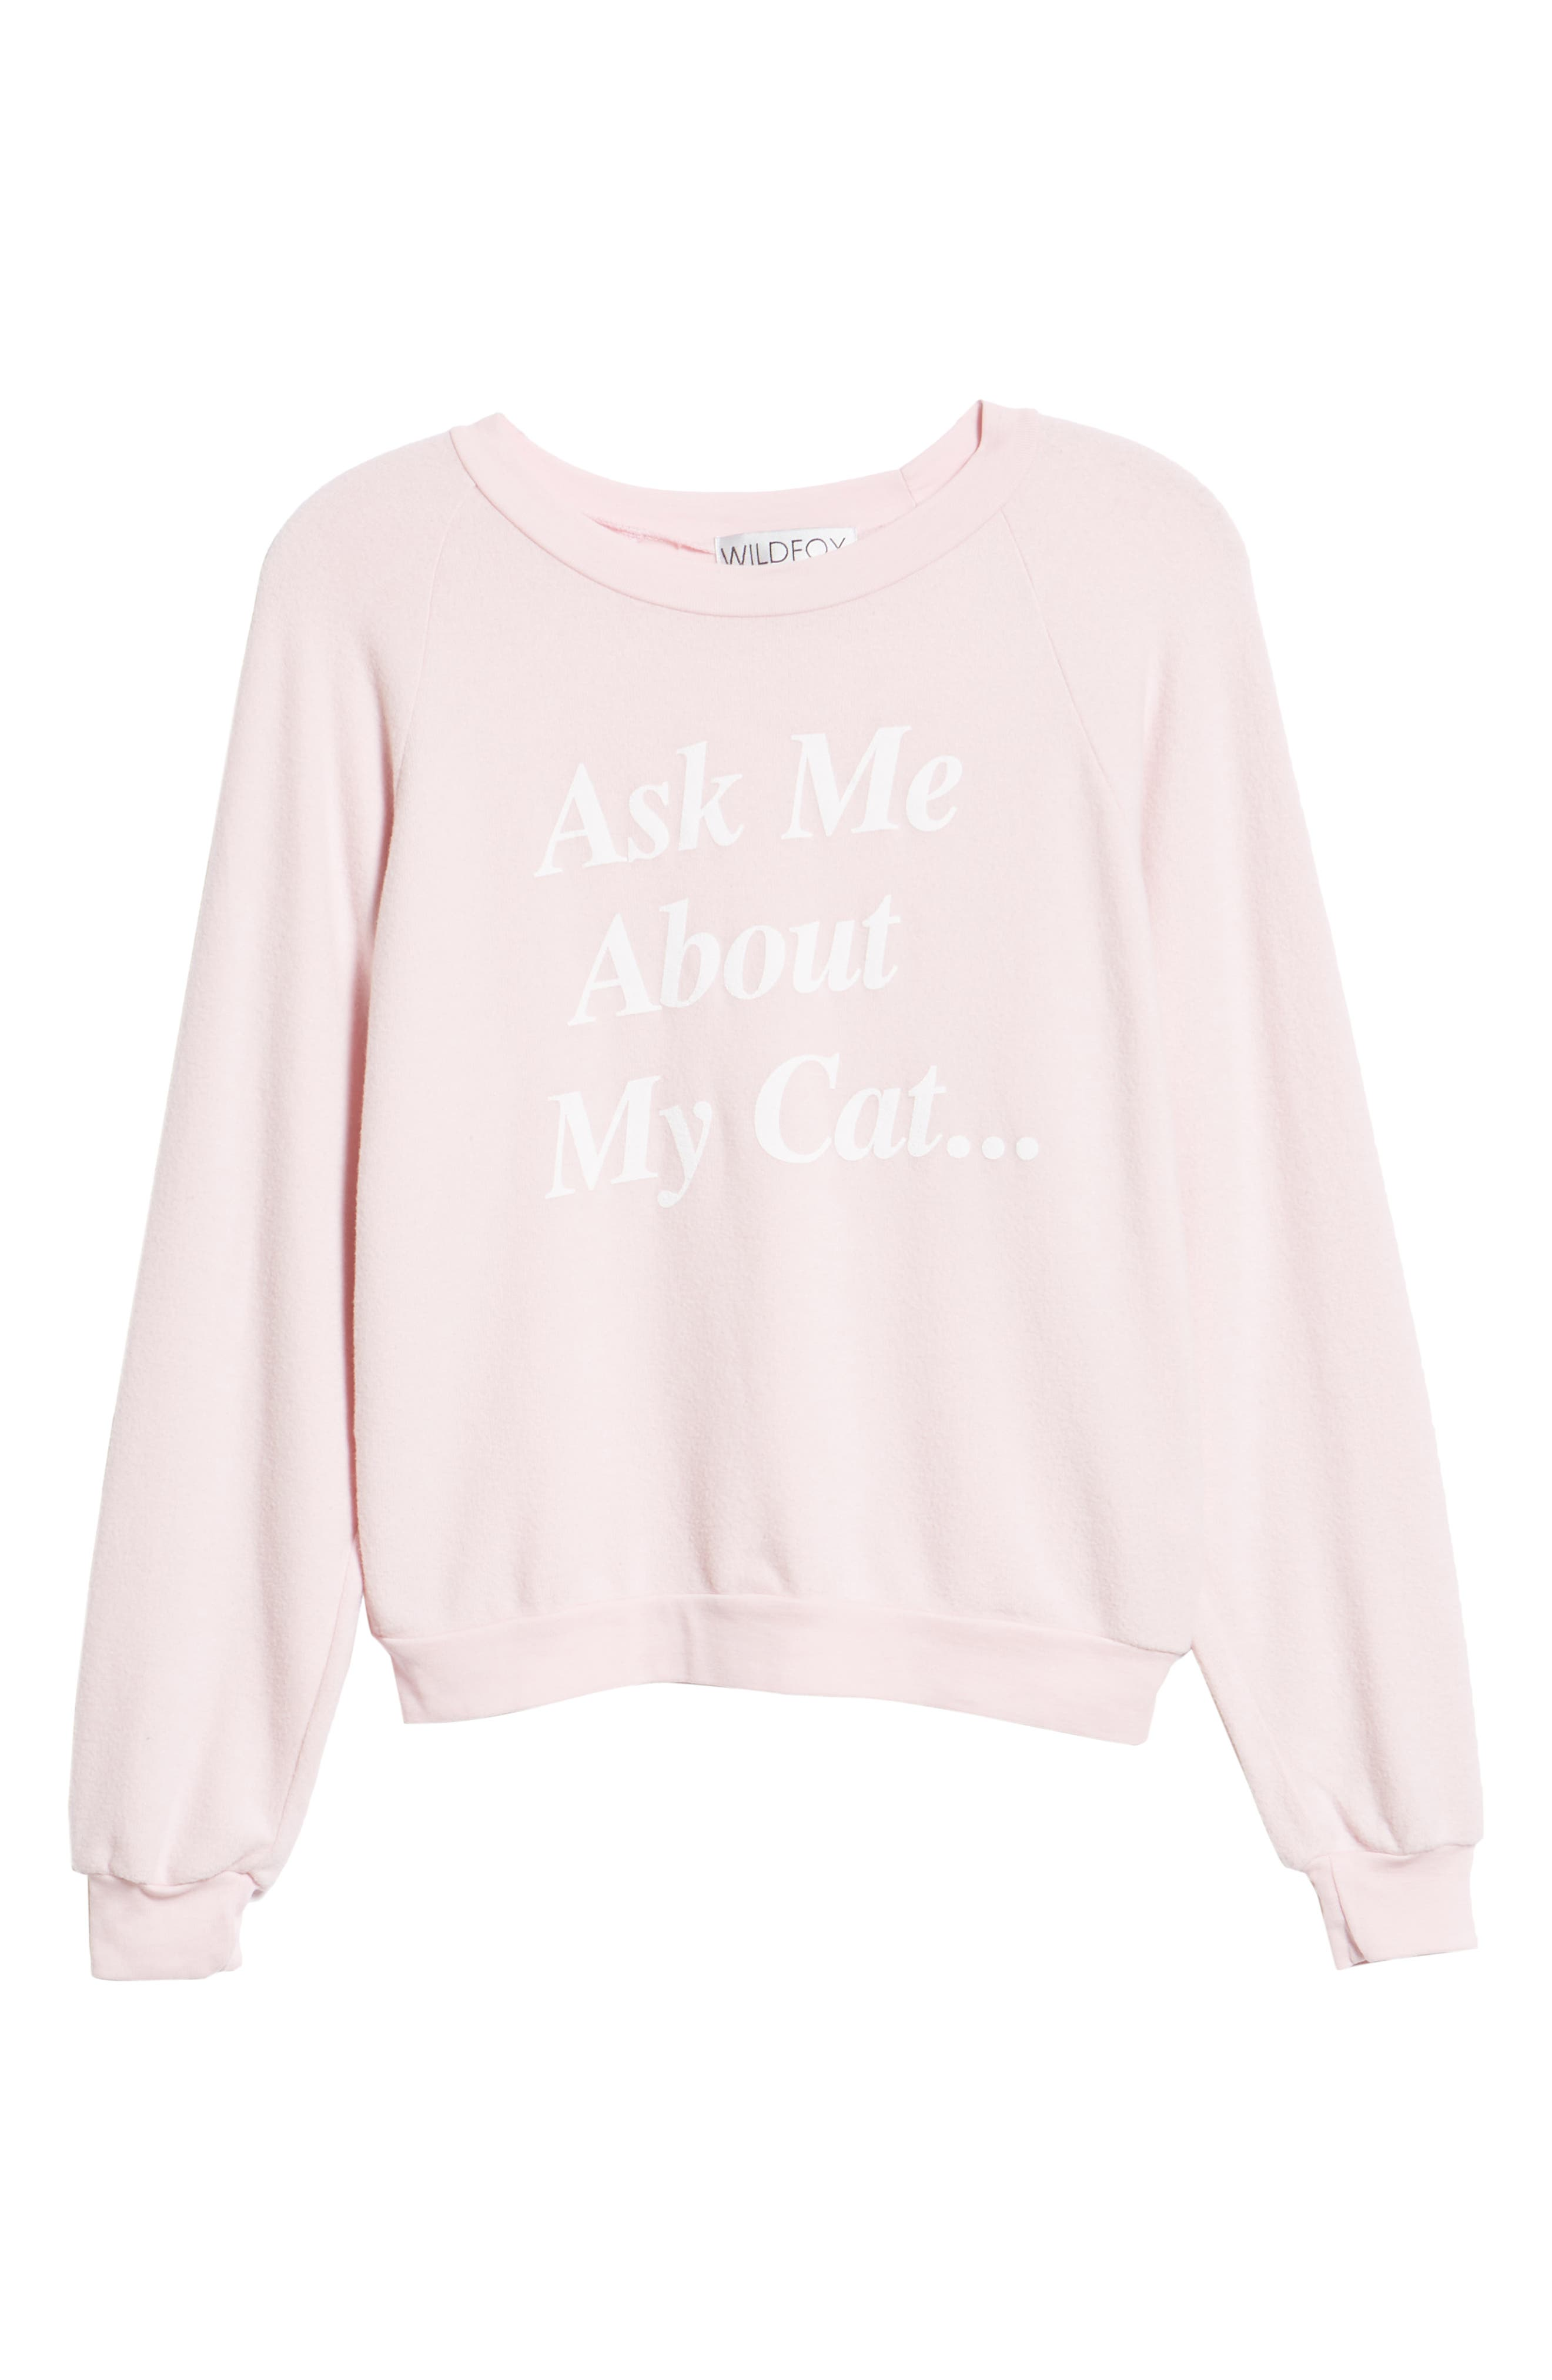 My Cat Sweatshirt,                             Alternate thumbnail 6, color,                             BABY DOLL PINK